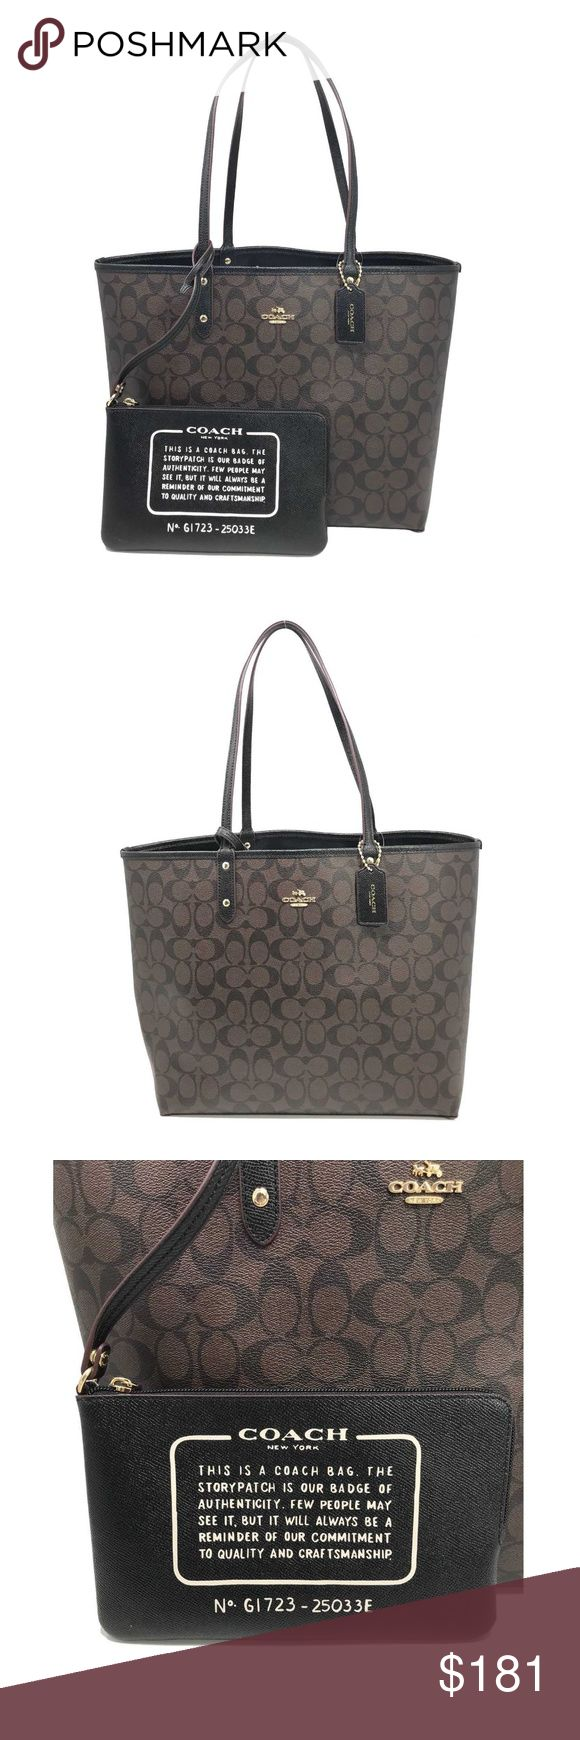 """Coach 25033E Signature Reversible PVC Tote Black Coach 25033E Signature Reversible PVC City Tote In Brown Black  item# 273106432375  100% Authentic Coach!  Buy with confidence!  • MSRP: $350.00  • Style: F58293  Features:  • Signature coated canvas  • Reversible  • Removable pouch  • Gold tone hardware  • Handles with 9 1/2"""" drop  • 13"""" (L) x 11 1/2"""" (H) x 6 1/4"""" (W)  • Imported  Please feel free to ask any questions. Happy shopping! Coach Bags Totes"""